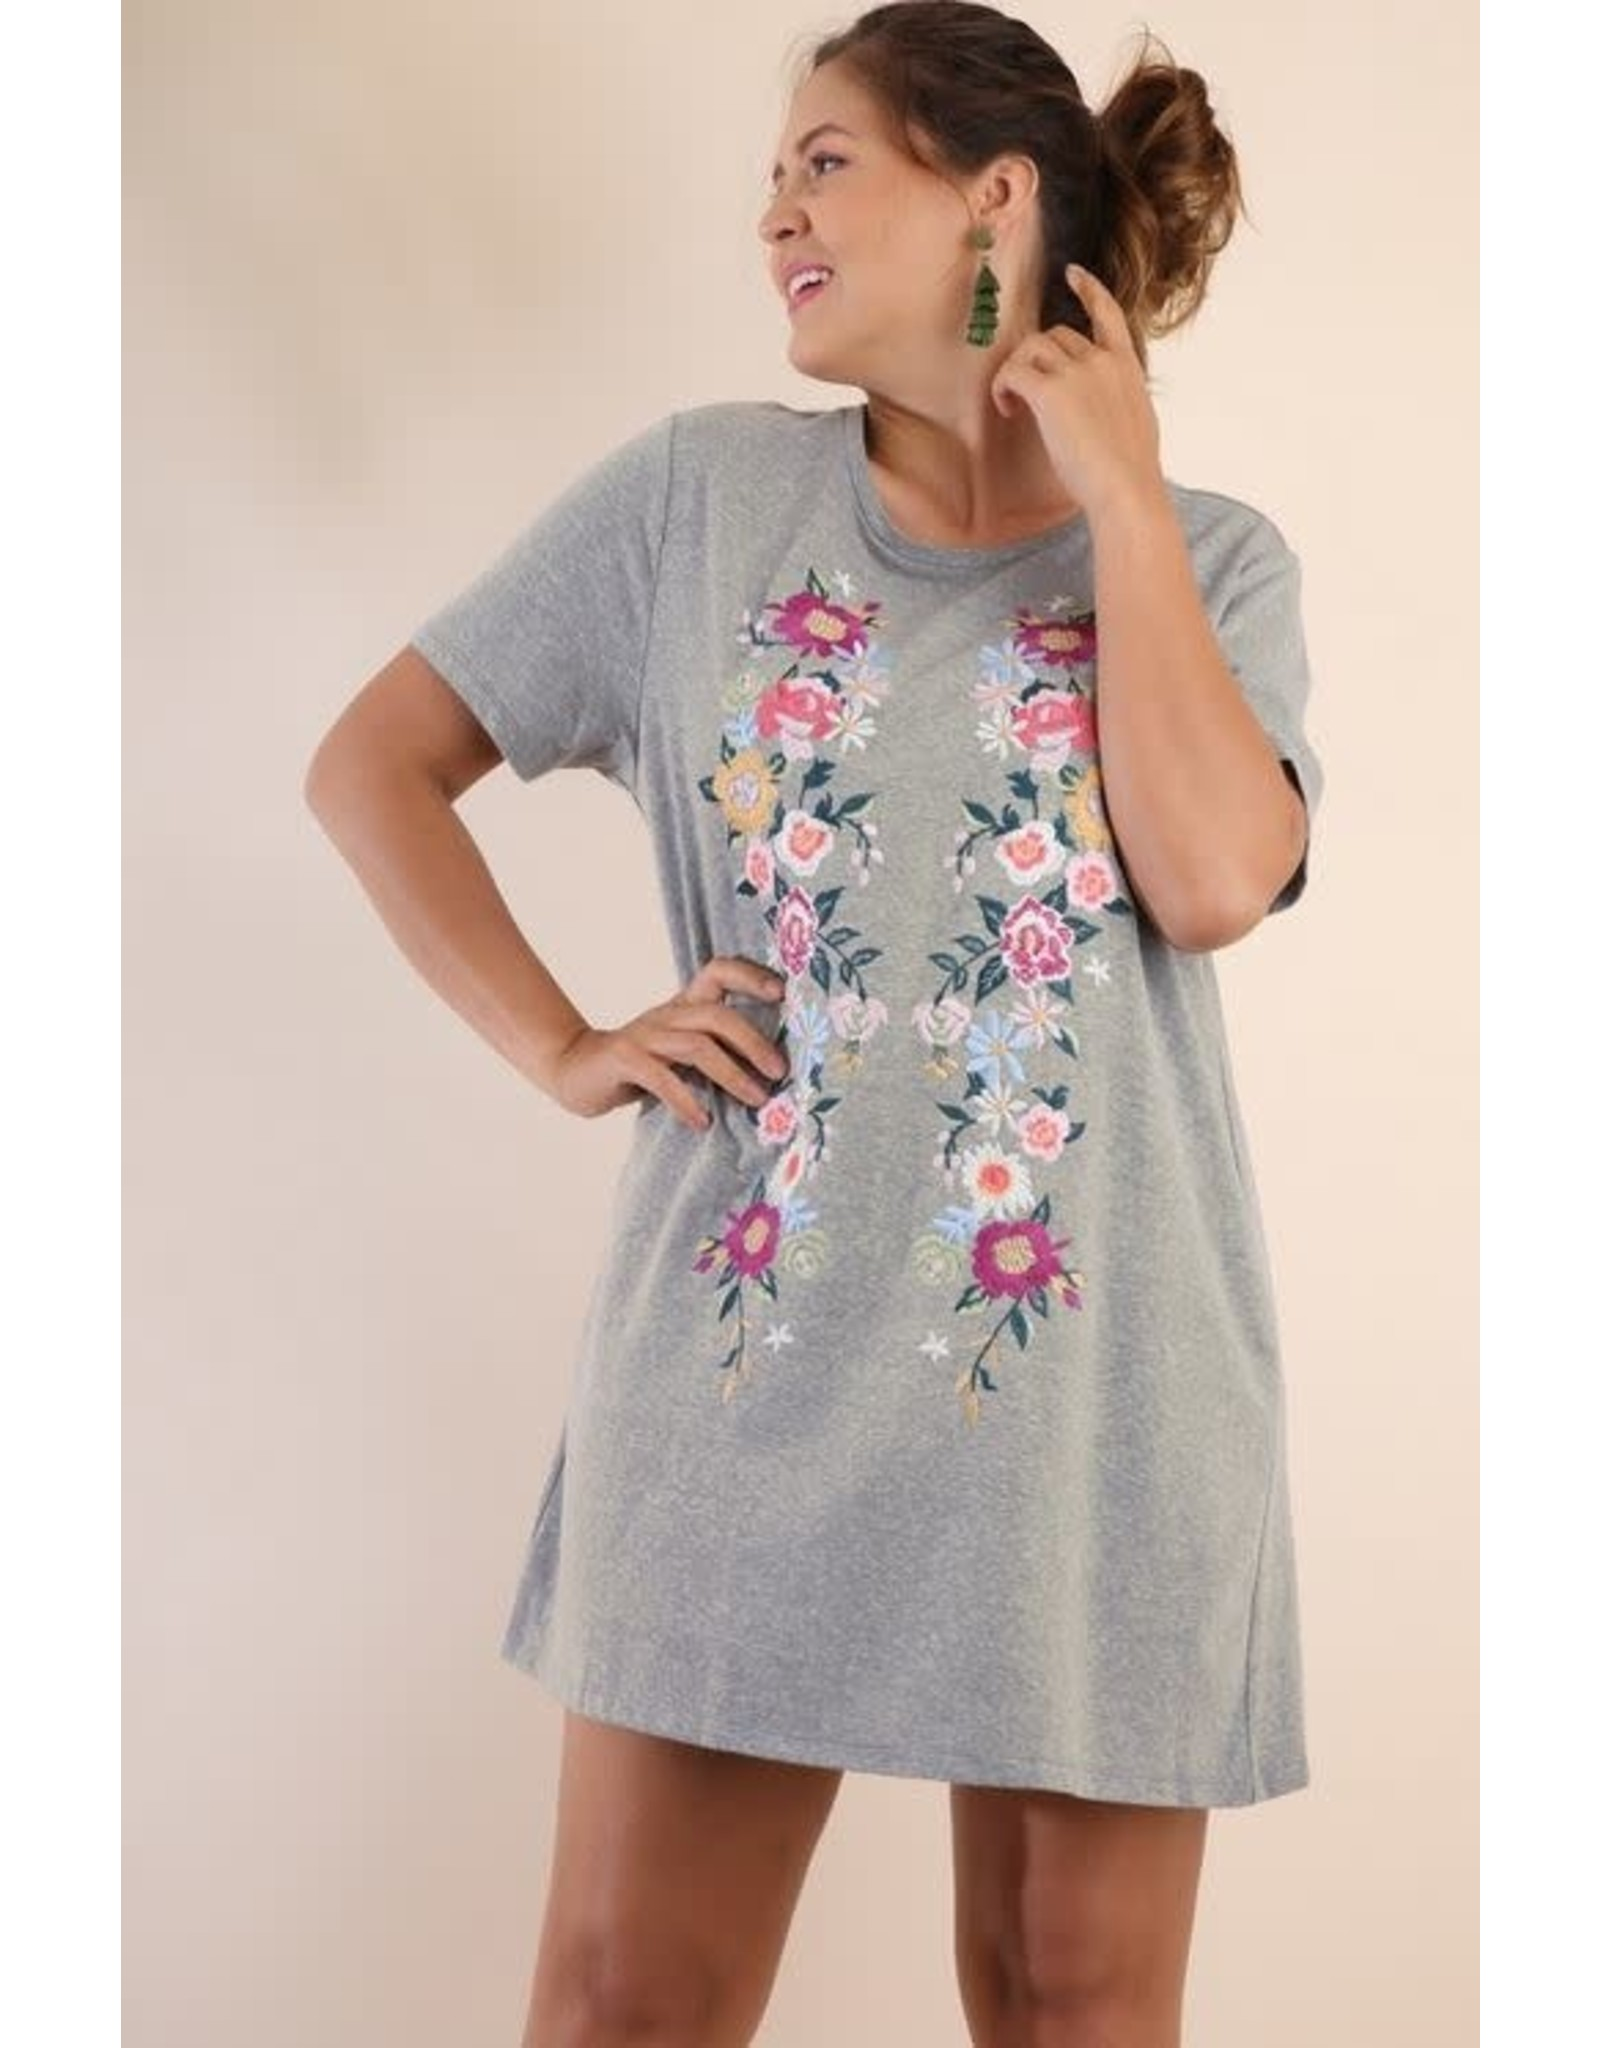 LIGHT GREY FLORAL EMBROIDERED SHORT SLEEVE TEE DRESS